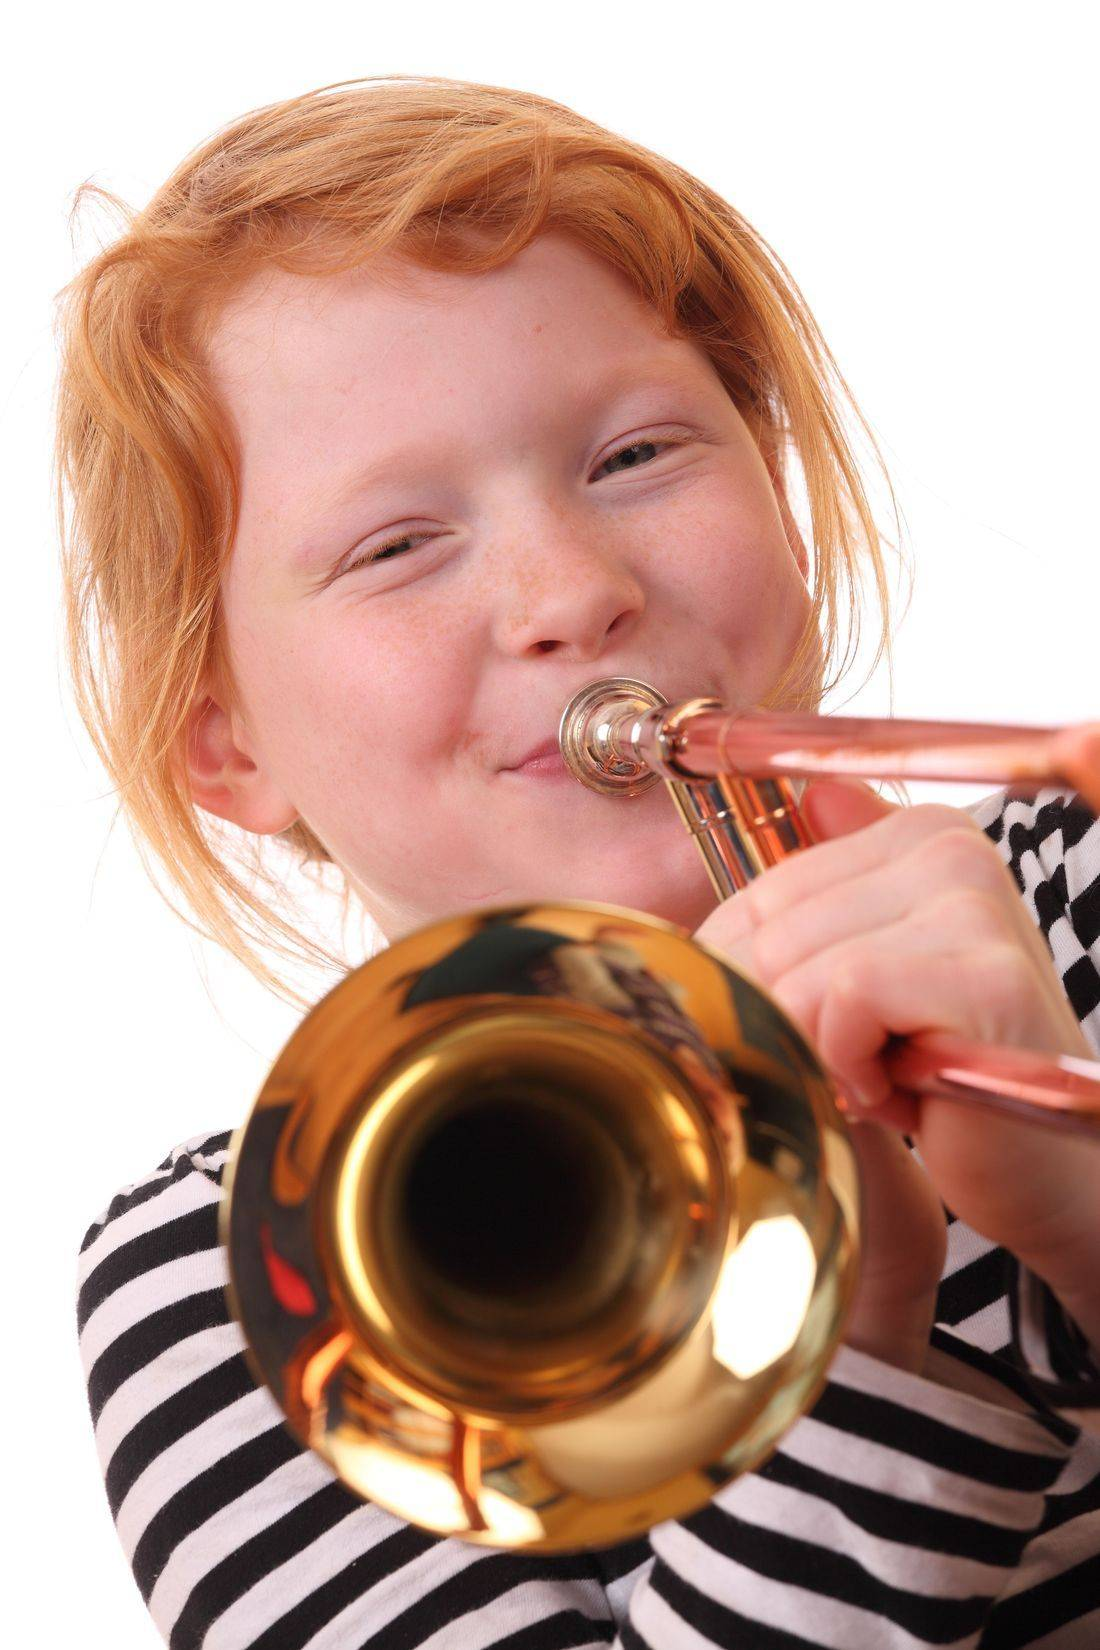 trombone lessons, trumpet lessons, trombone, trumpet, band instrument lessons, band instruments, trombone, trumpet, saxophone, clarinet, flute, music lessons, dunn school of music, music, dunn, nc, guitar, guitar lessons, dunn, nc, dunn school of music, music lessons, music, children, Coats, Benson, Lillington, Buies Creek, Clinton, Falcon, Wade, Godwin, Newton Grove, Eastover, Fayetteville